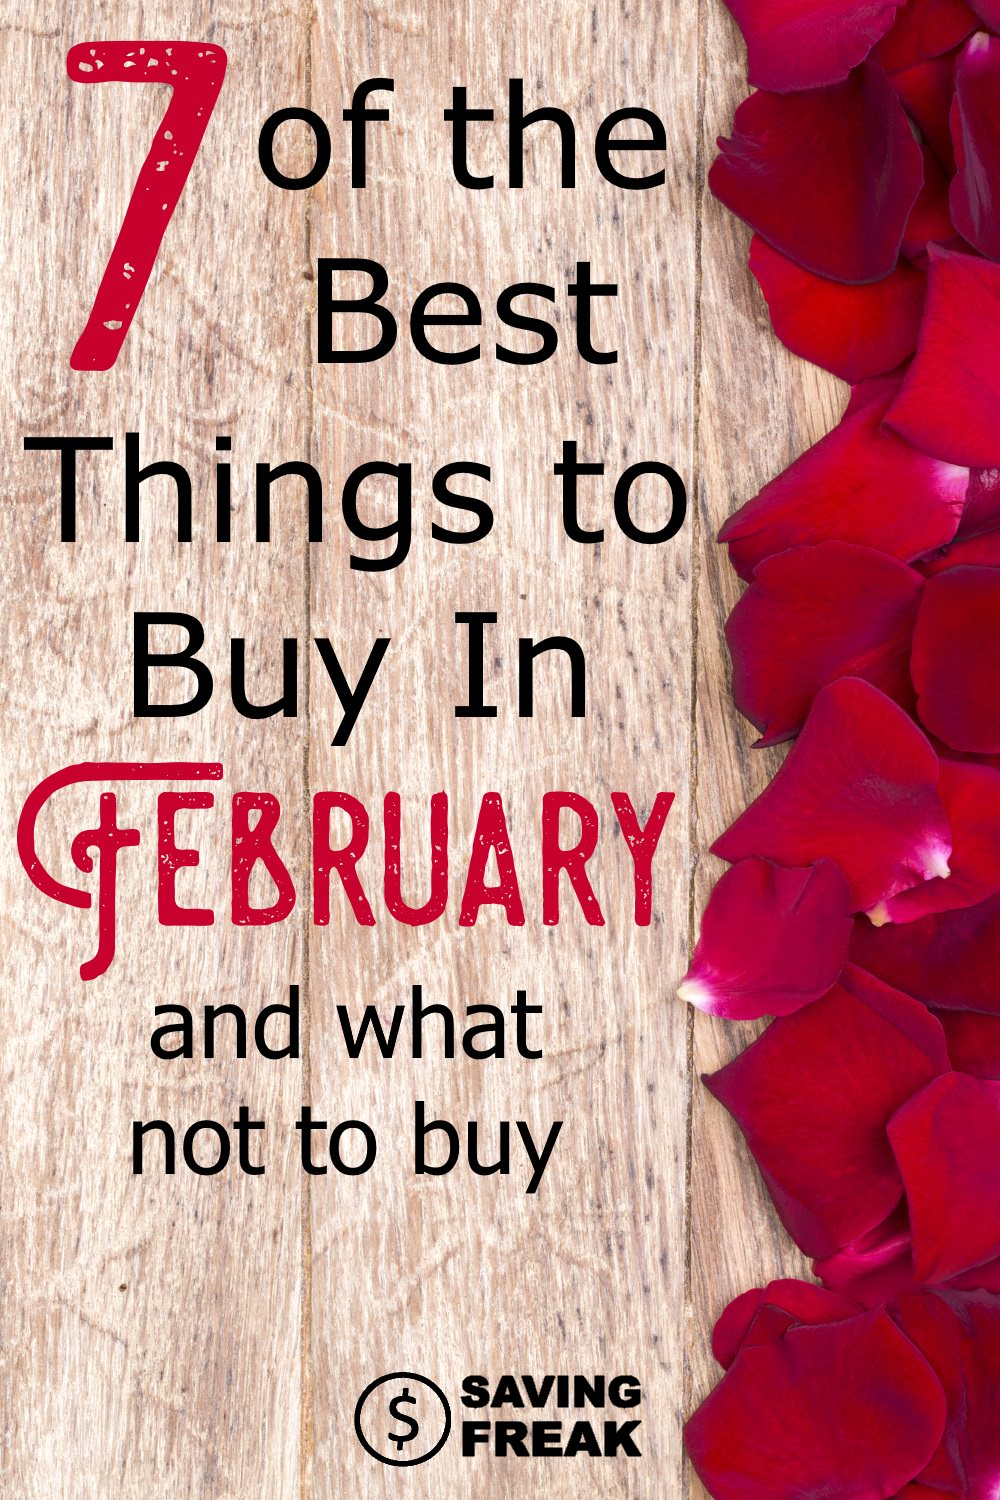 February sales offer a ton of opportunities to save money on items you need or would be purchasing anyway. Use this guide to get the best deals and know what to buy and not buy in February.